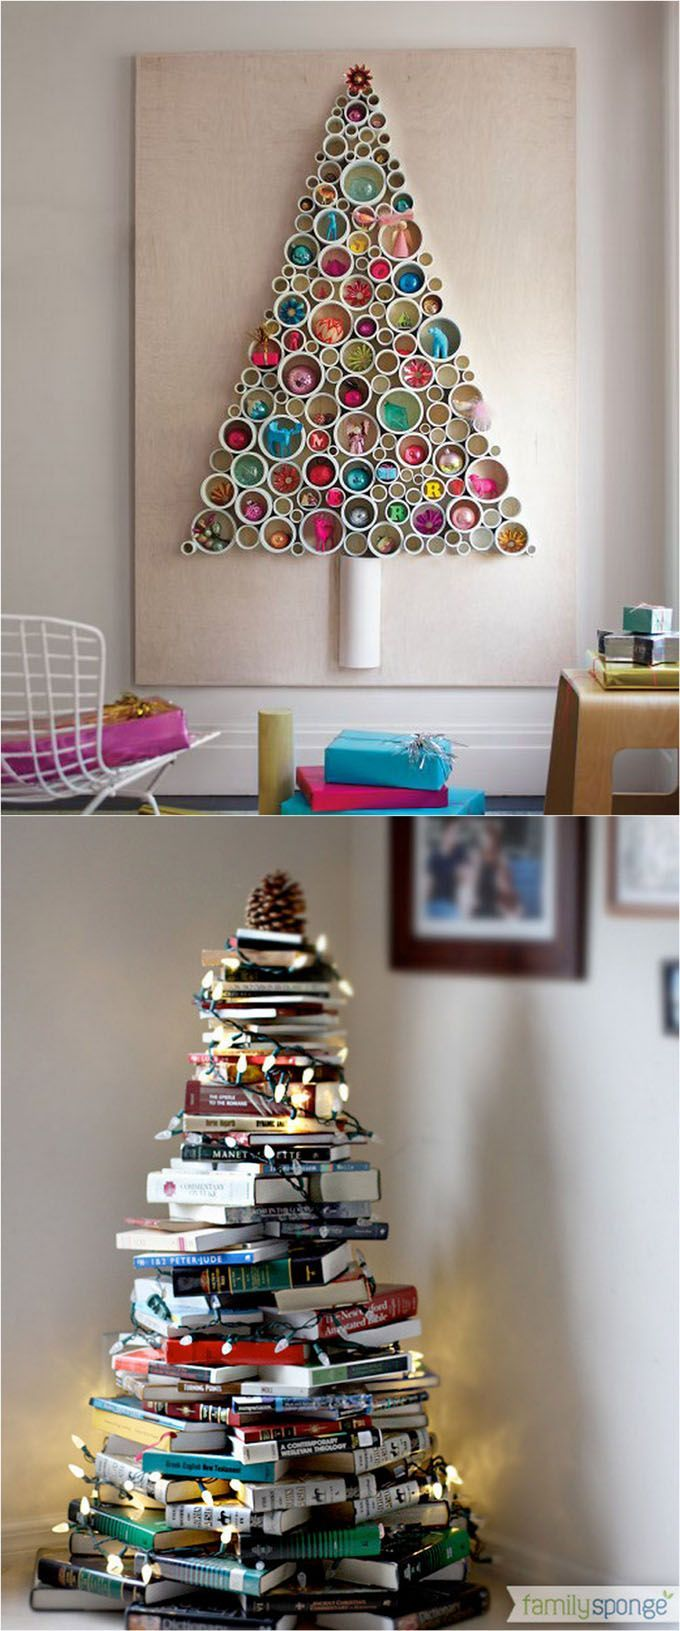 Folded fabric christmas tree - 18 Unconventional And Beautiful Diy Christmas Trees Ideas To Create Unique Christmas Decorations For Your